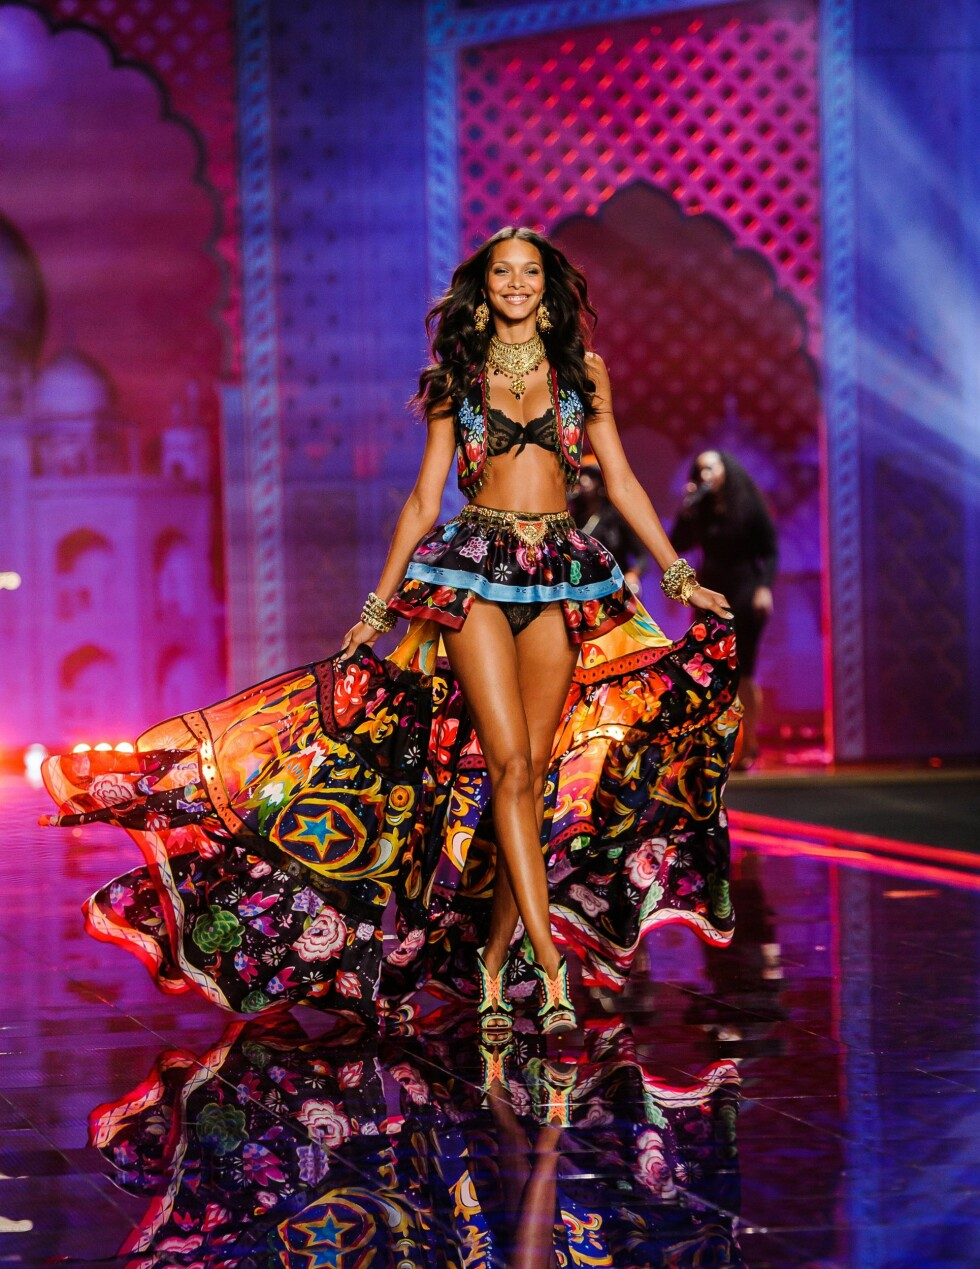 Victoria's Secret Fashion Show på Earls Court Exhibition Center i London. Foto: SartorialPhoto / Splash News/ Al